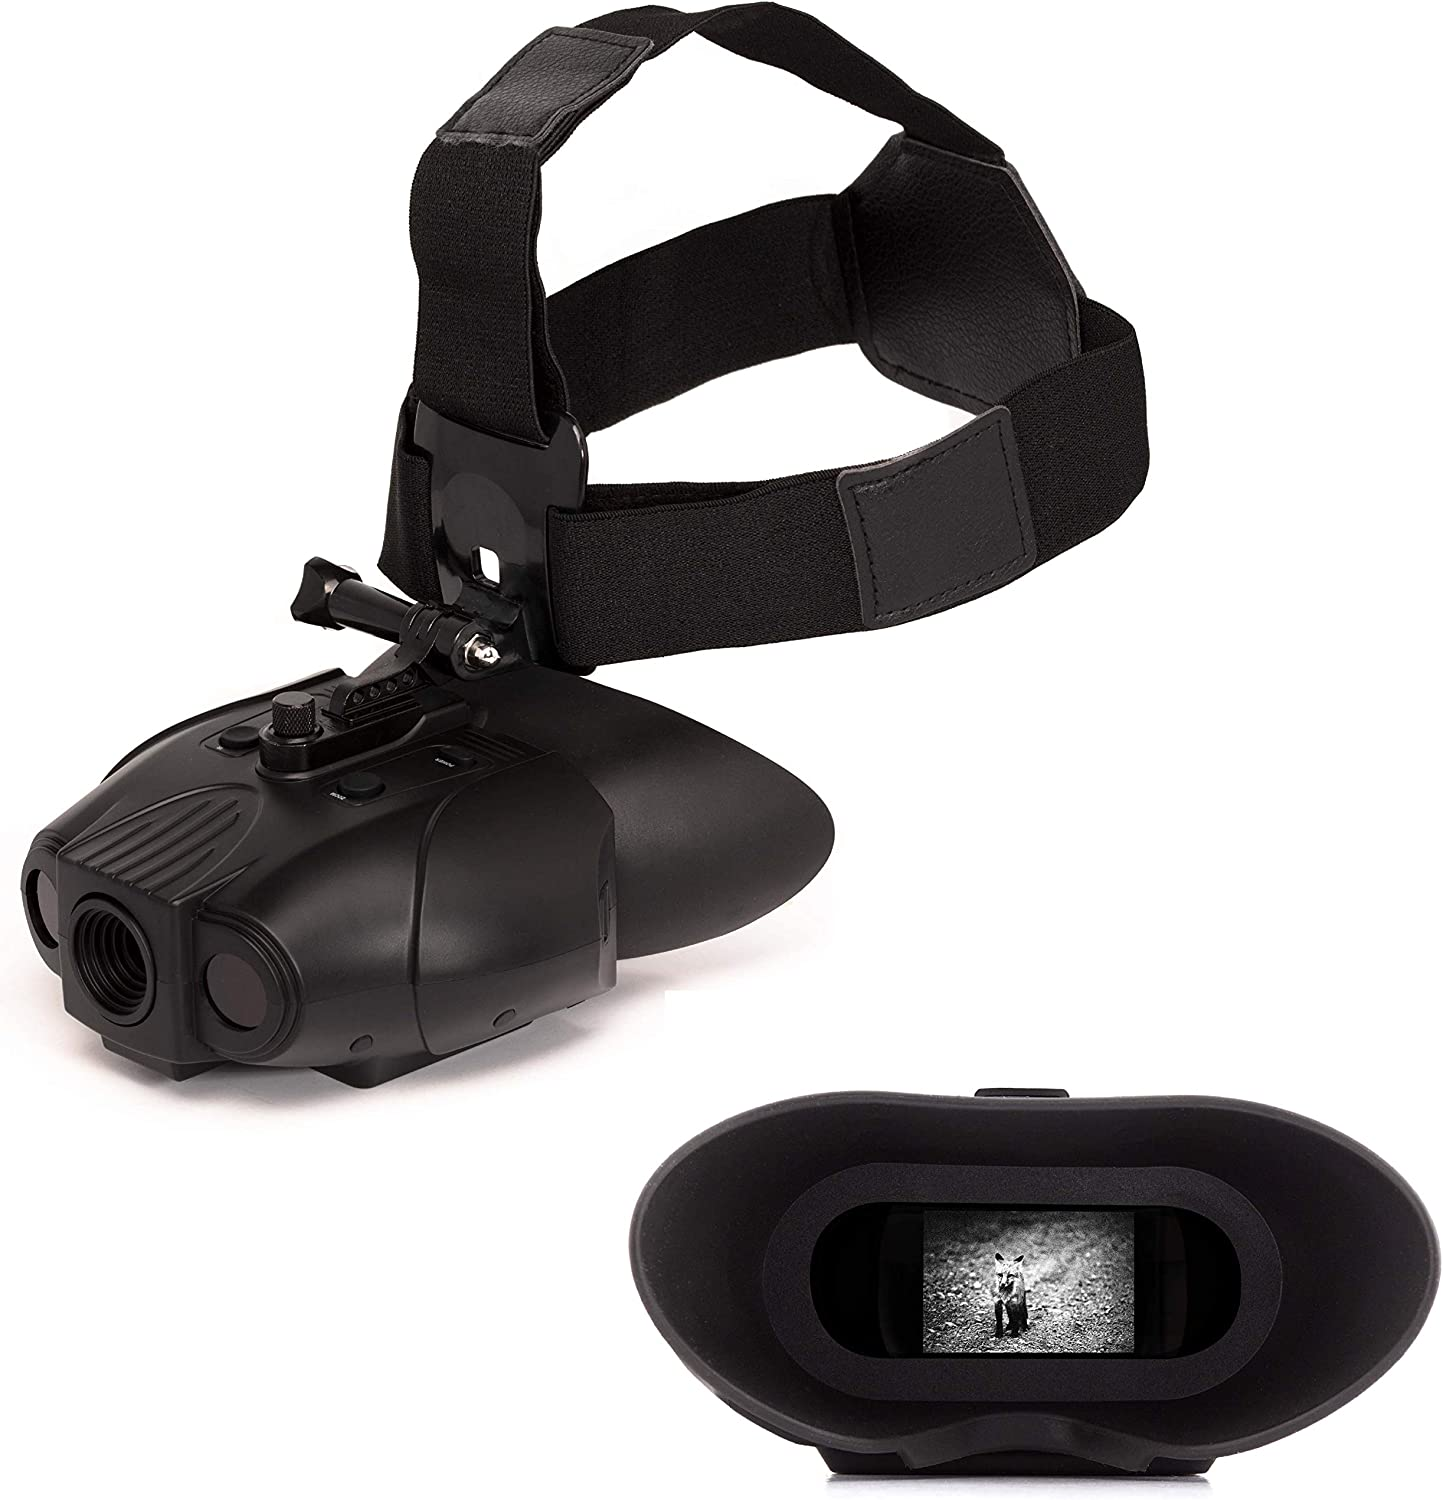 Nightfox 119V Night Vision Goggles Digital Infrared 75yd Range Rechargeable